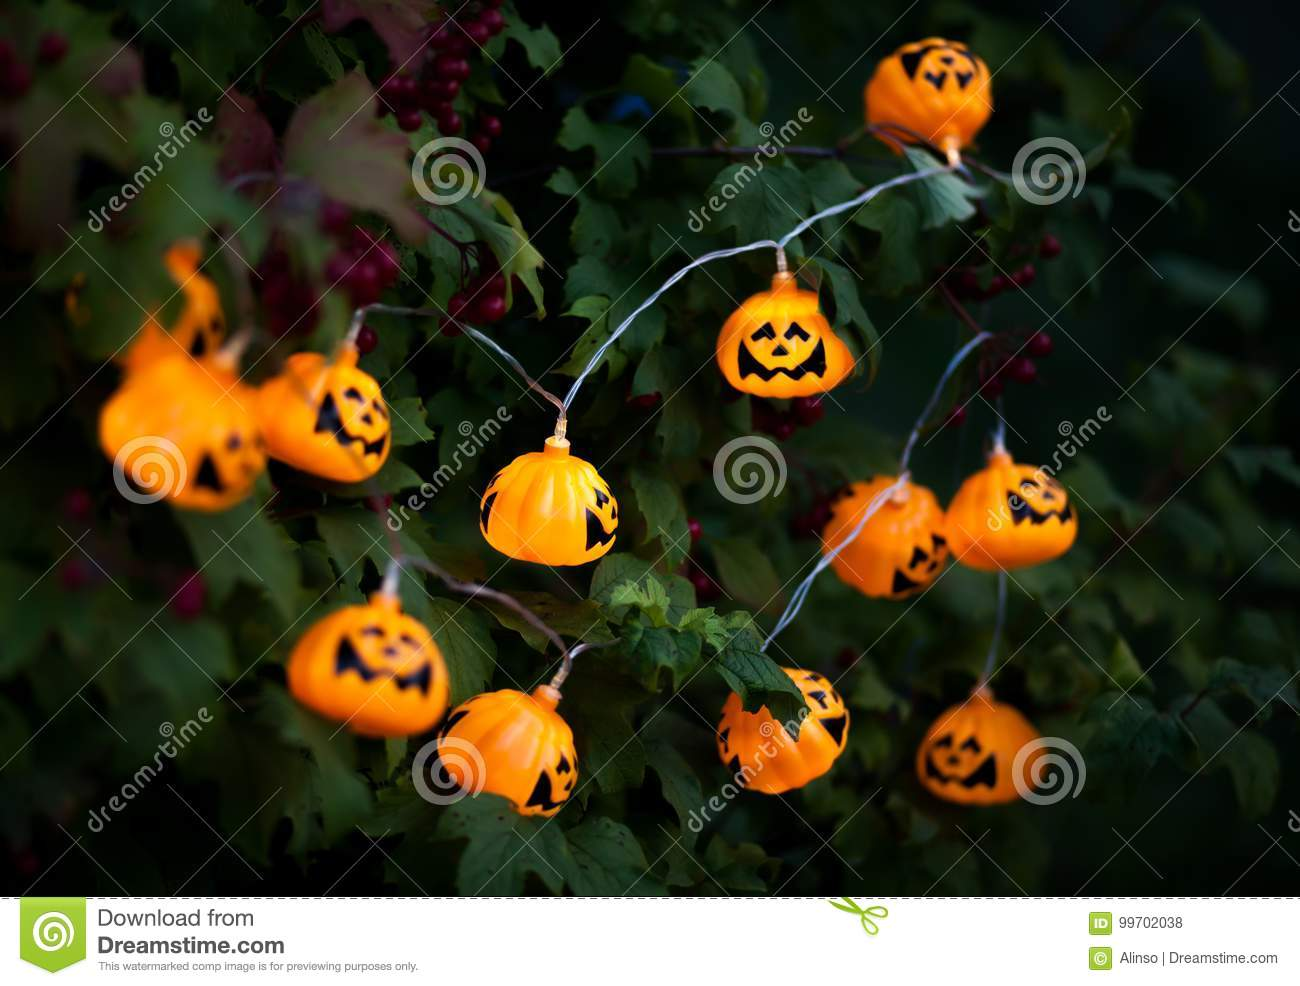 Halloween Decorations Outdoor Stock Photo Image Of Decorations Glow 99702038